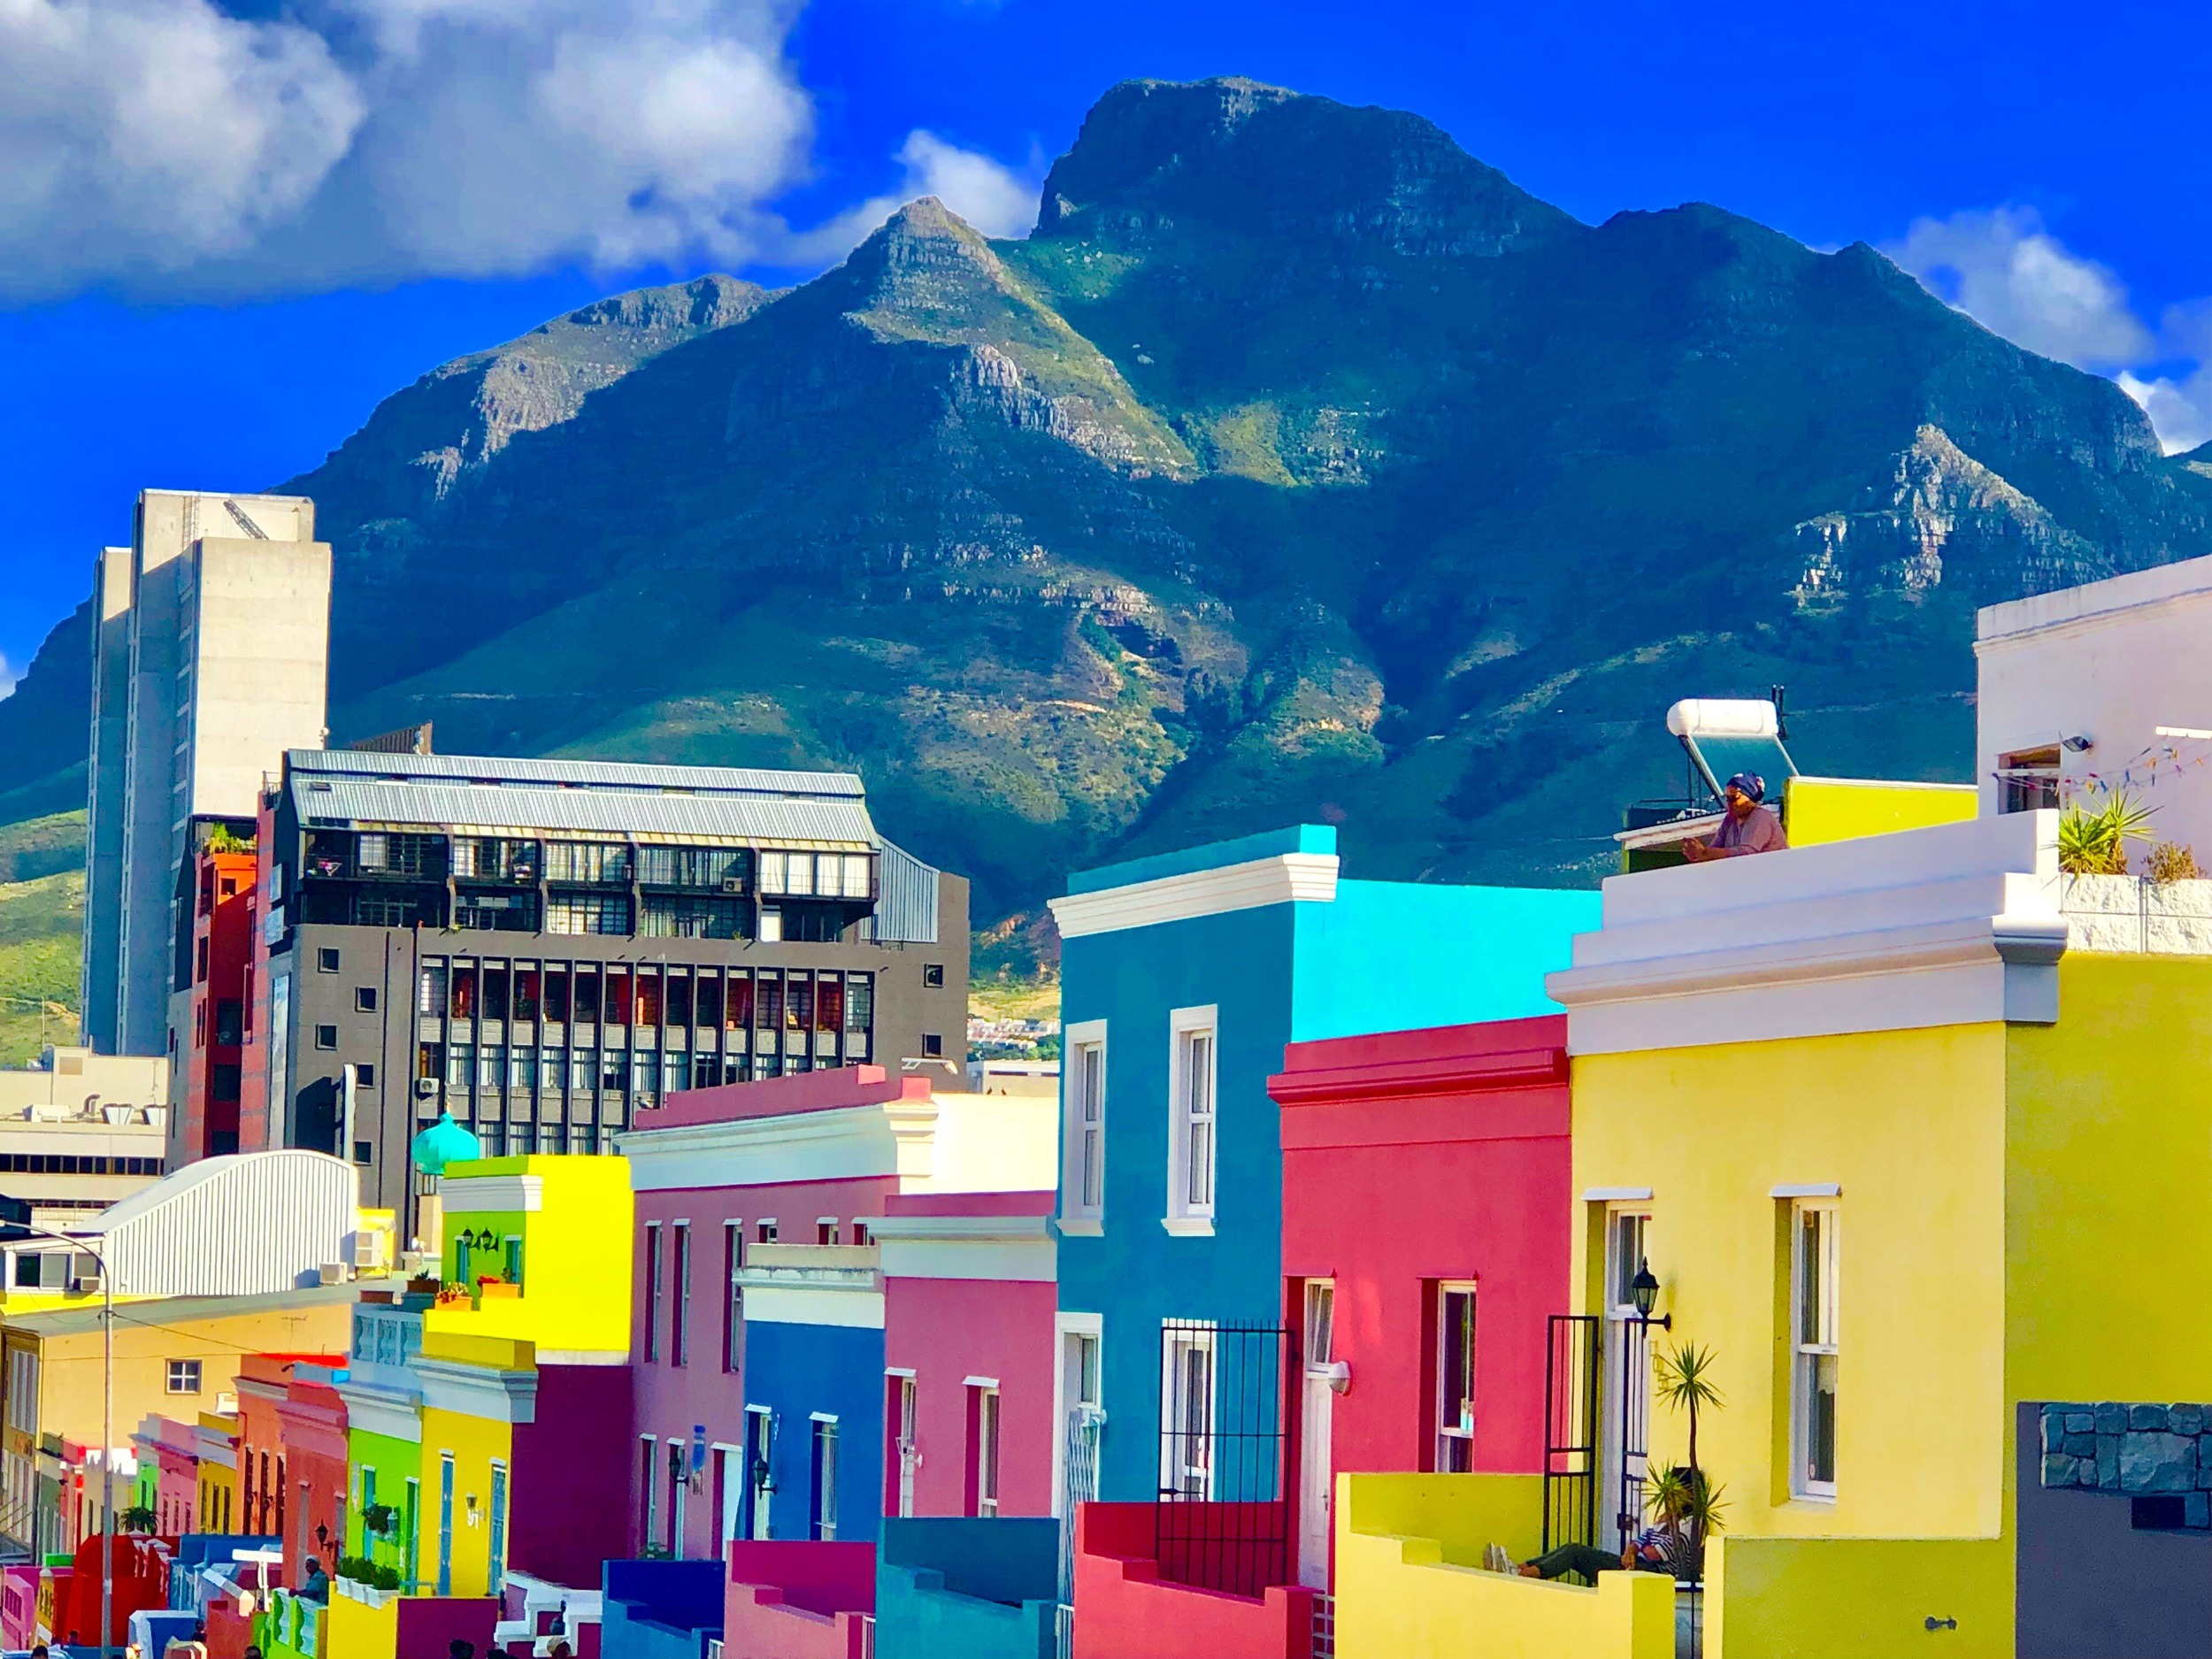 The colorful neighborhood of Bo-kaap in Cape Town, South Africa